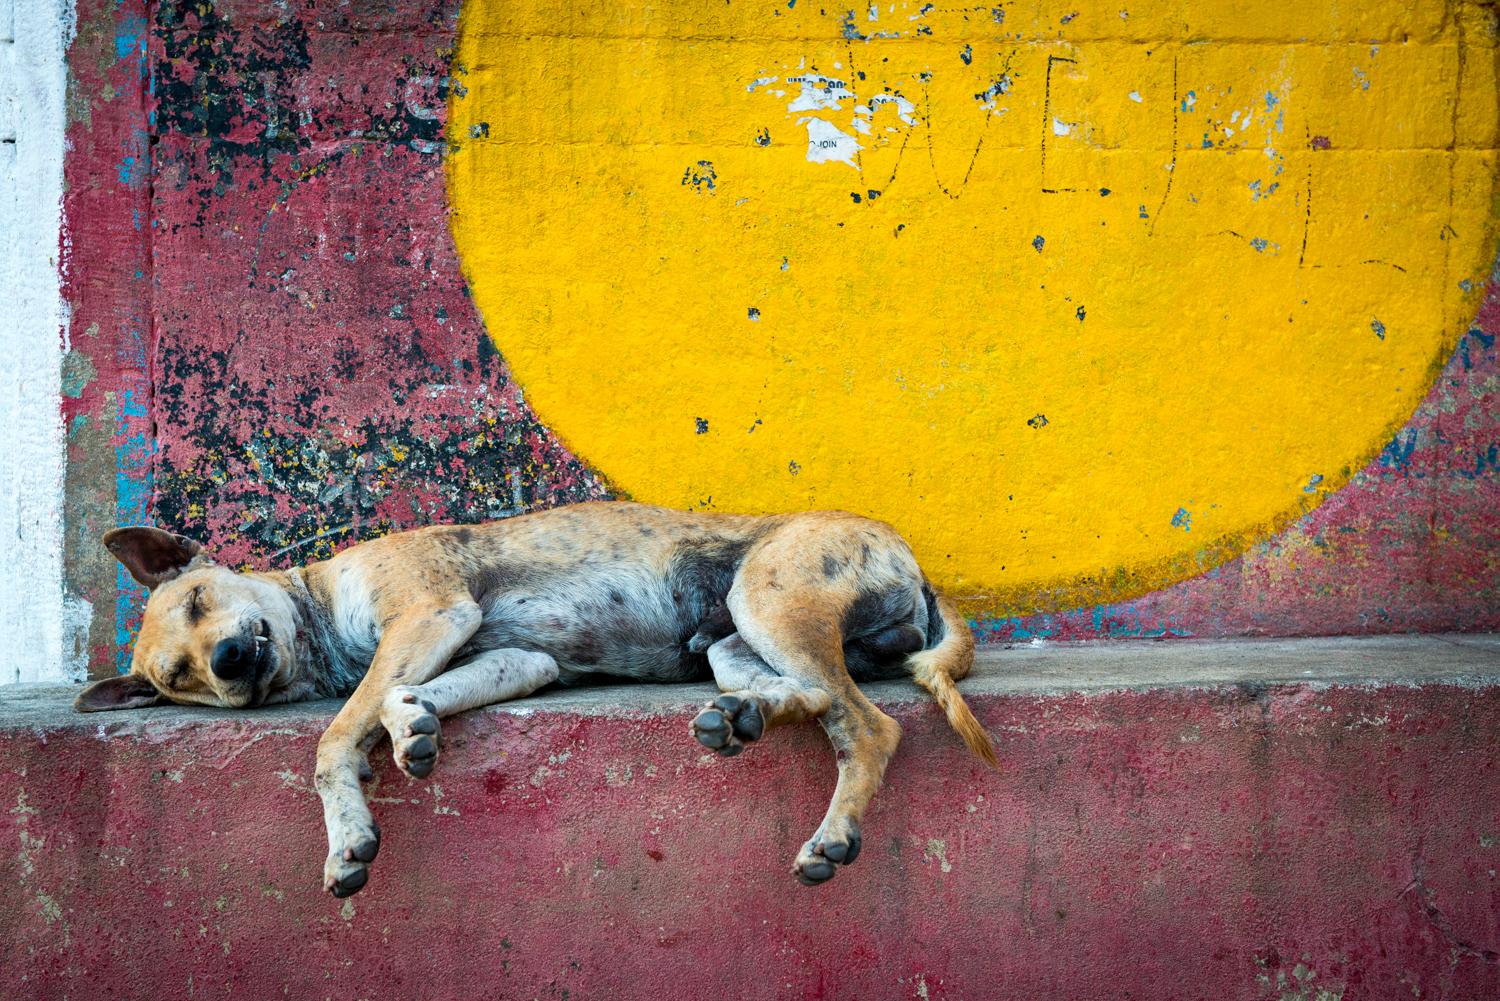 A dog rests unbothered by his busy surroundings - Varanasi, India.